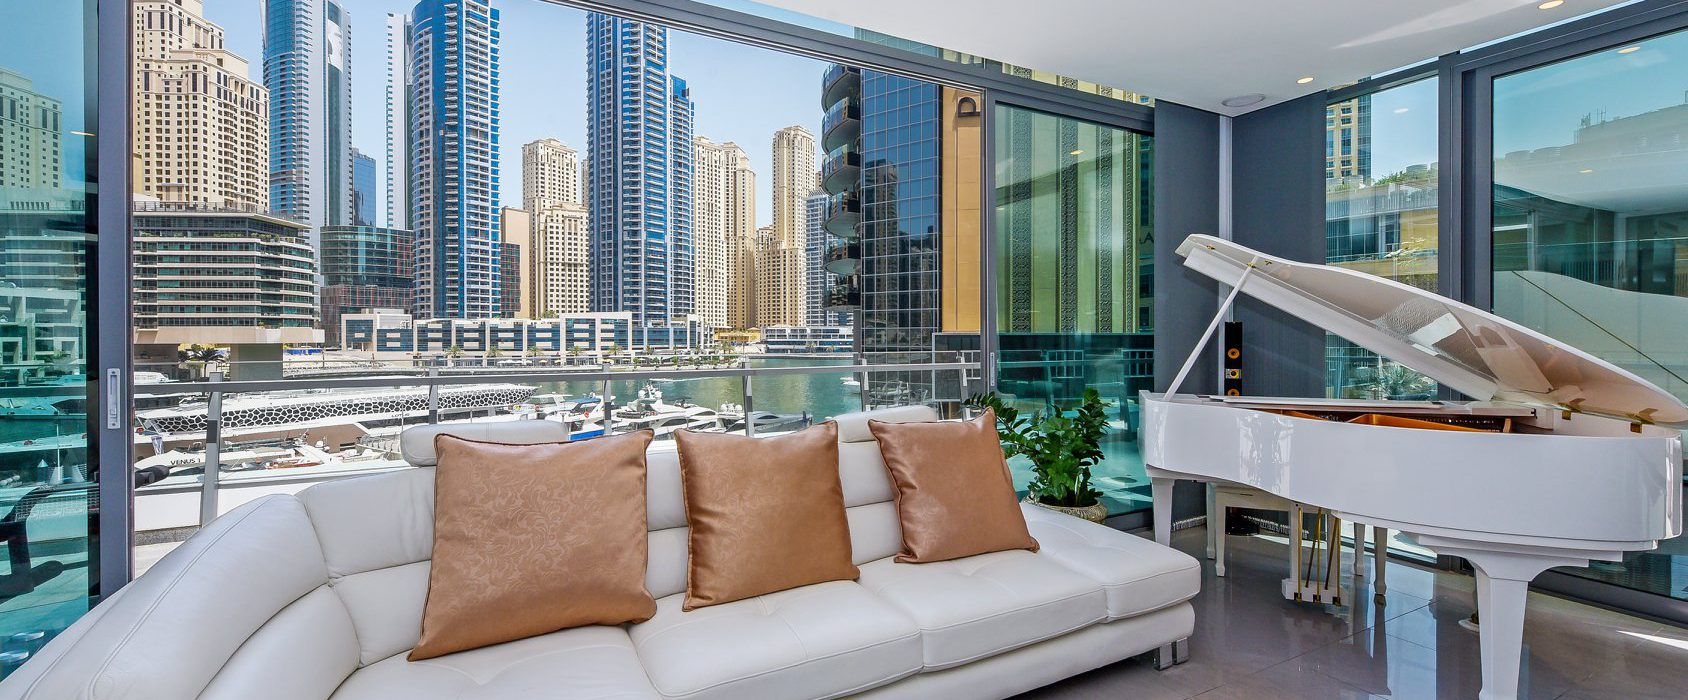 3 Bedroom Apartment for Sale in Silverene Tower B, Dubai ...